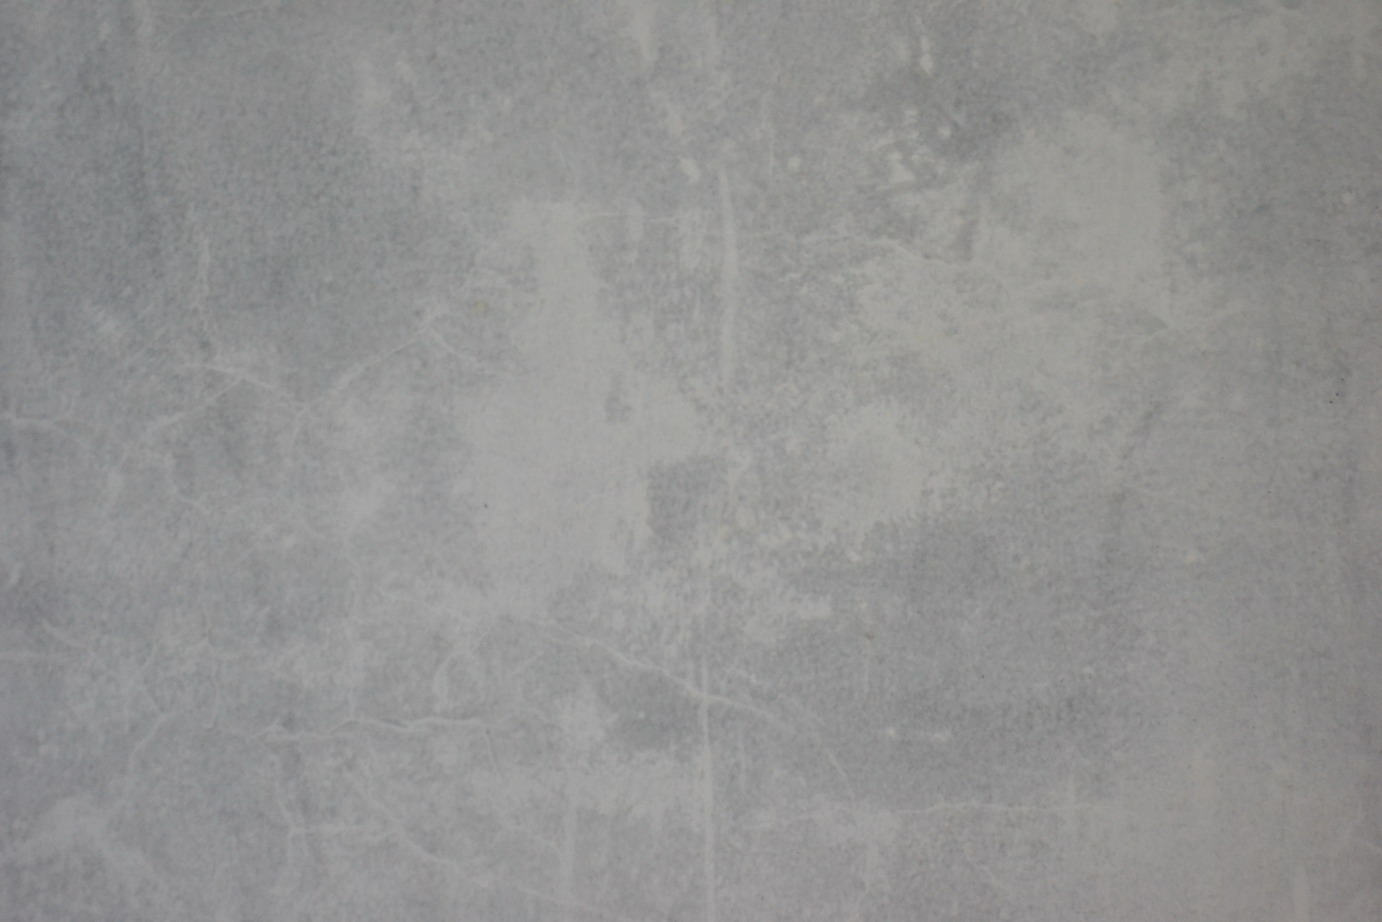 Wall Texture Paint In White Wal Hq Photo